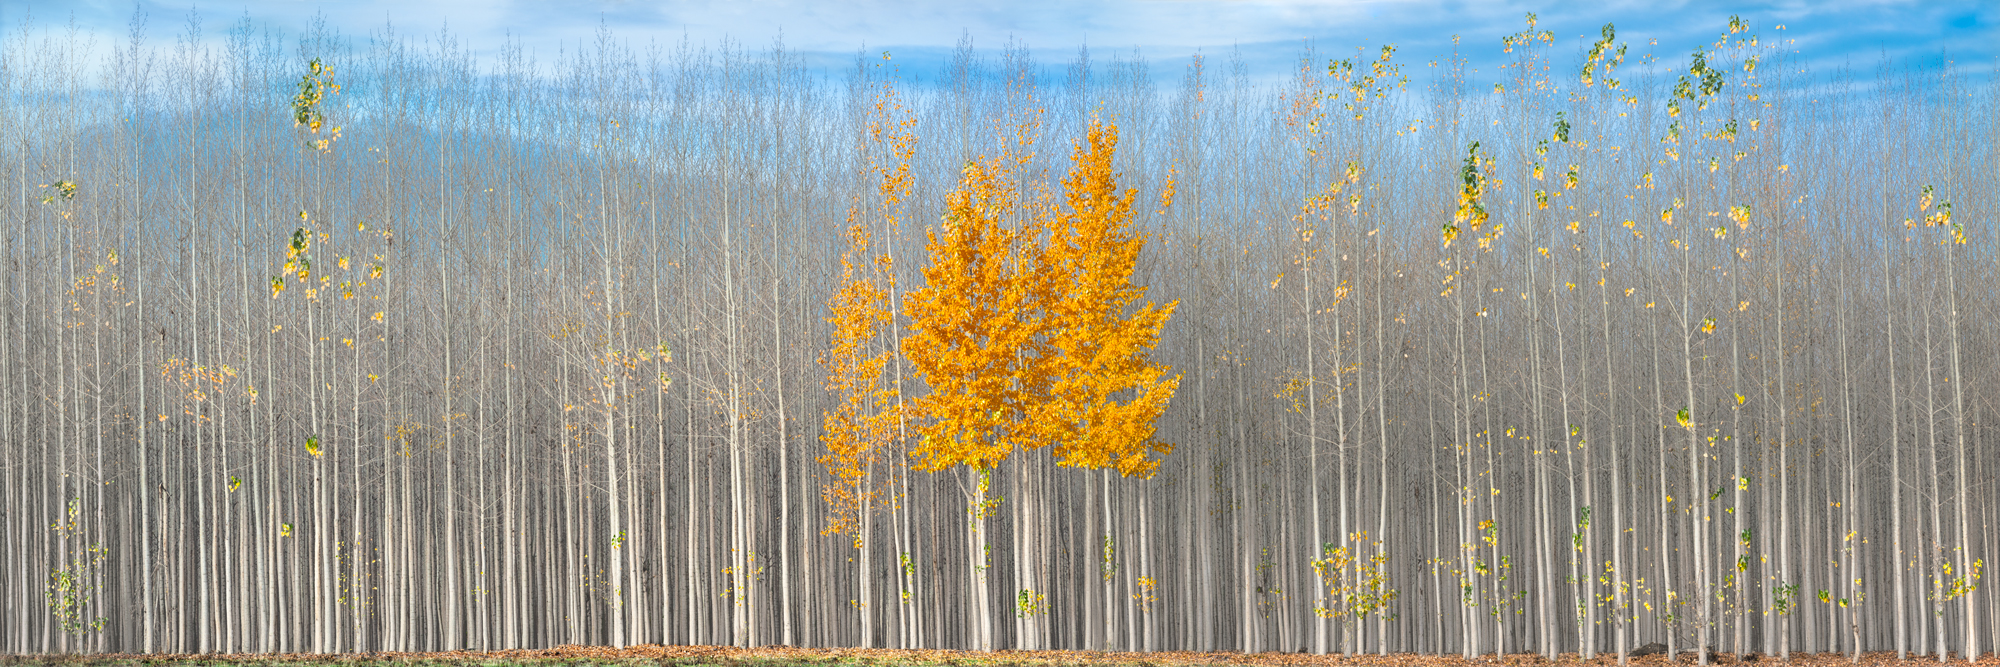 A Sun Story is a limited edition Fine Art Photograph by Jason Matias. It is an autumn photograph of a grove of poplar trees late in the season. All be three trees have shed their leaves. The golden leaves of the three trees shine like the sun and show autumn clinging to life and vibrancy.